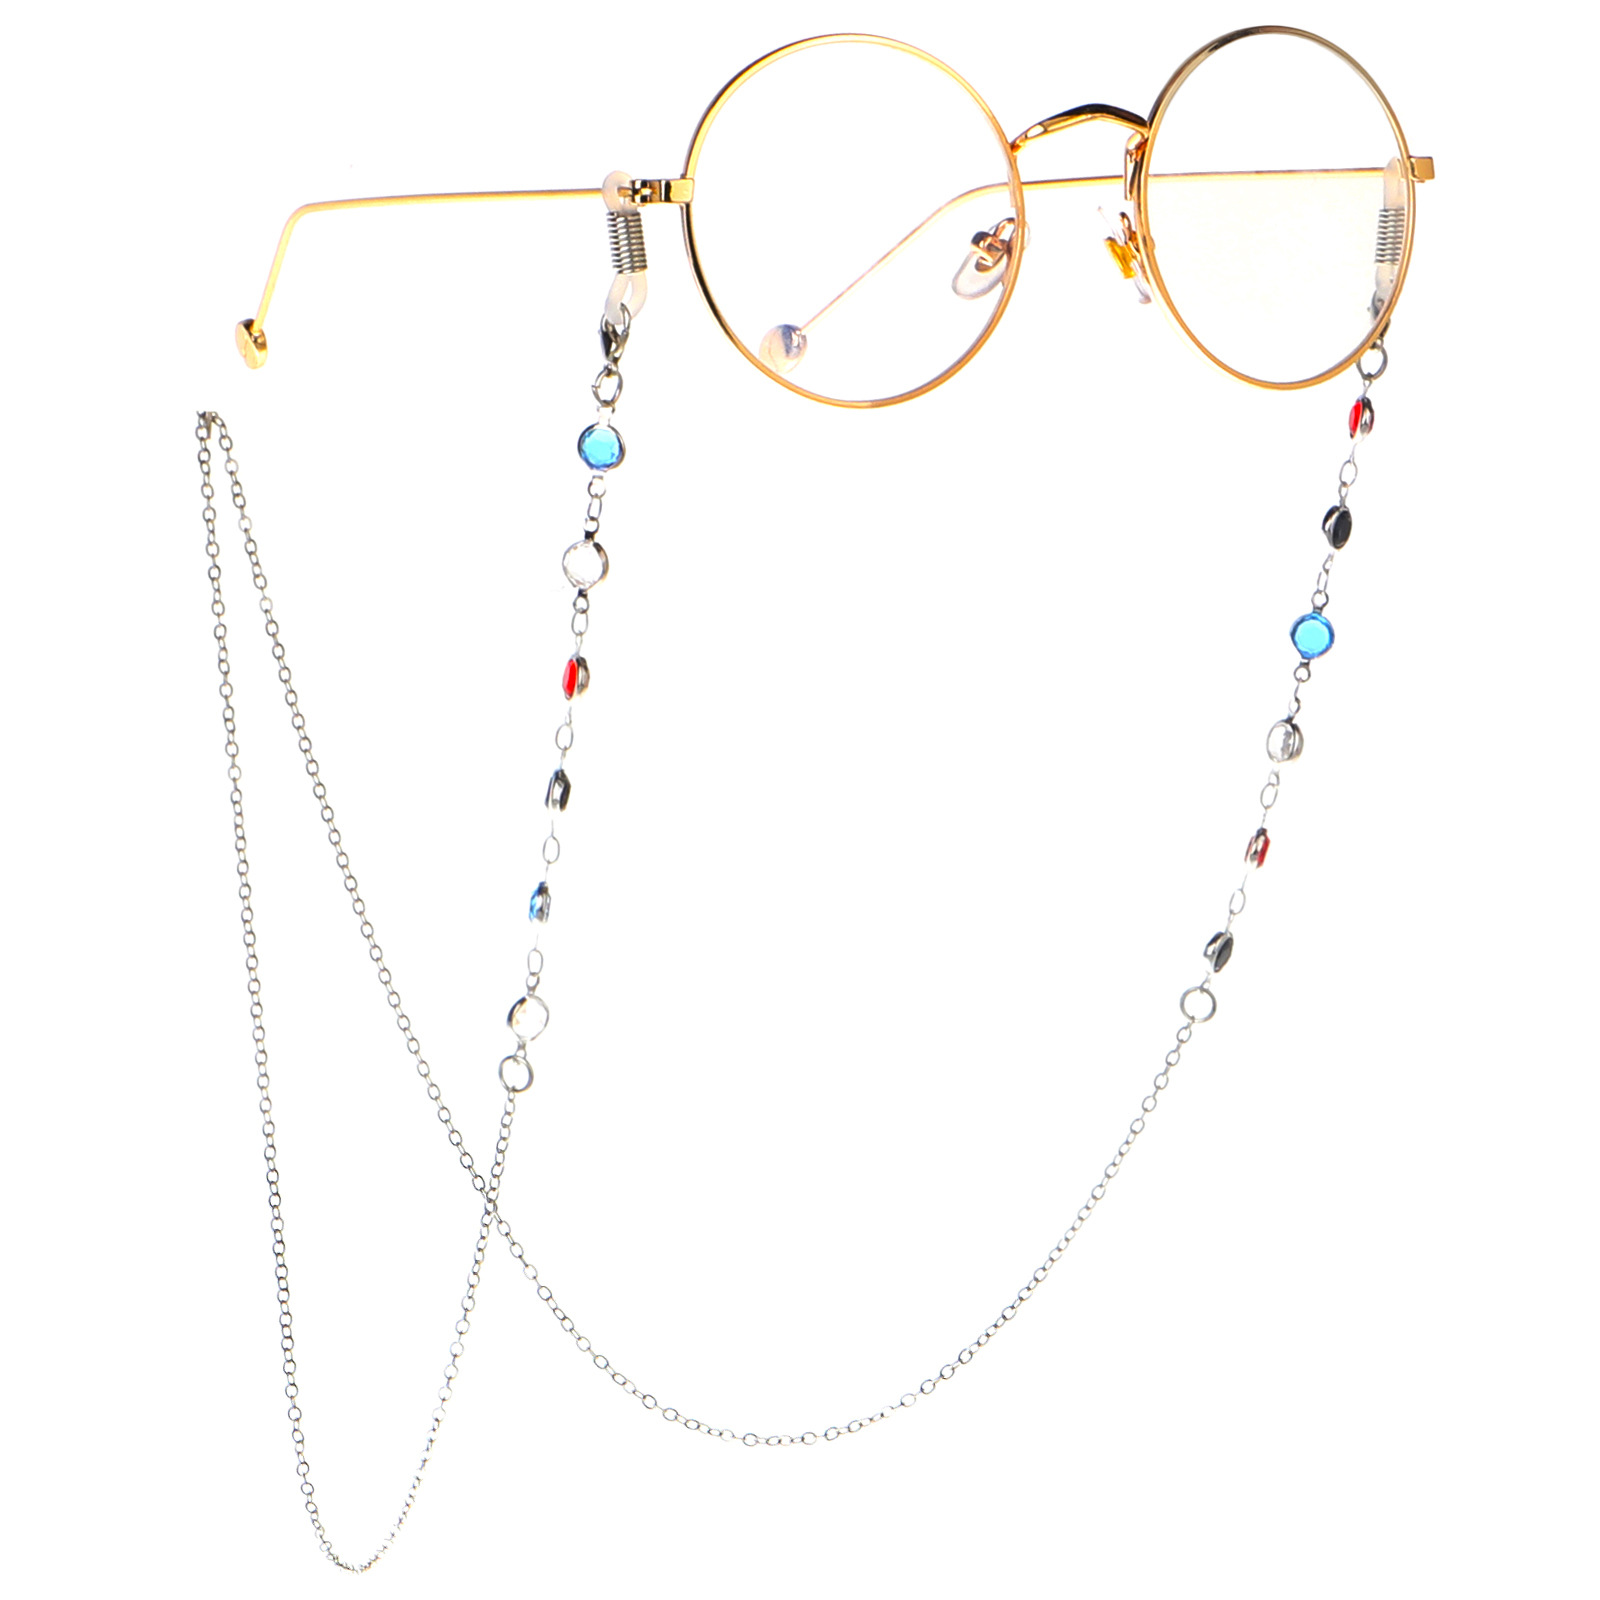 Crystal Beaded Eyeglass Chain Strap Sunglass Retainer Cord Spectacle Lanyard